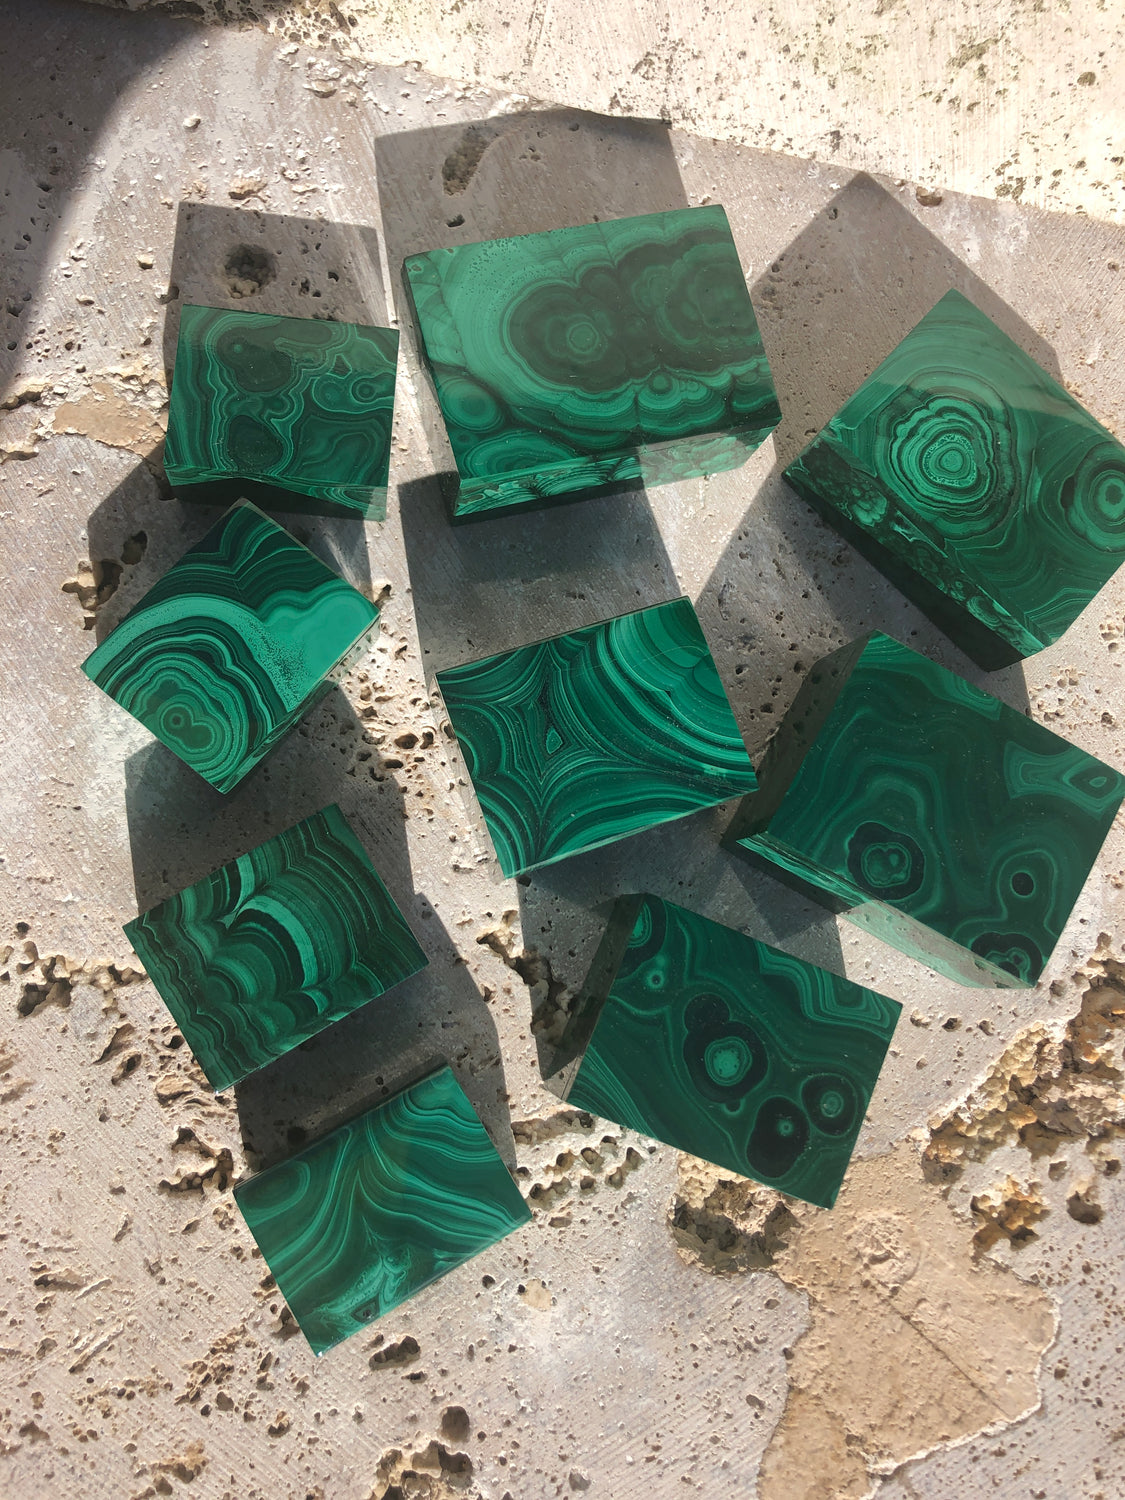 Malachite Gift Boxes  from Rebublic of Congo, Africa